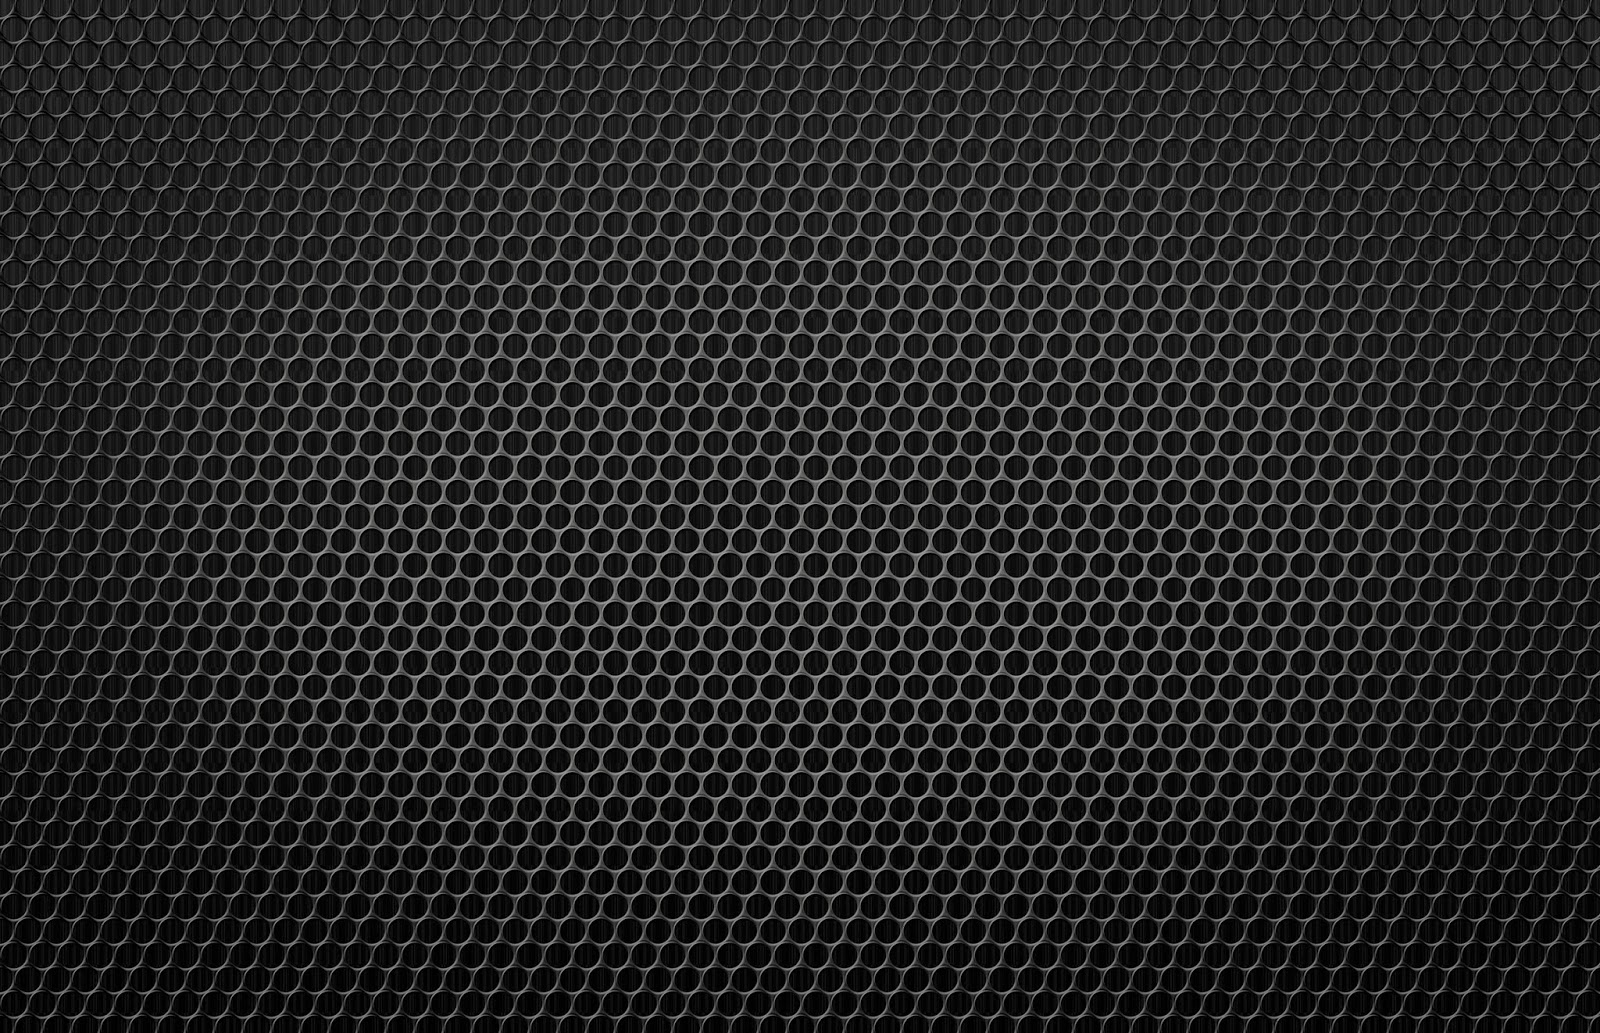 Dark Textured Background Design Patterns, Website Images ...